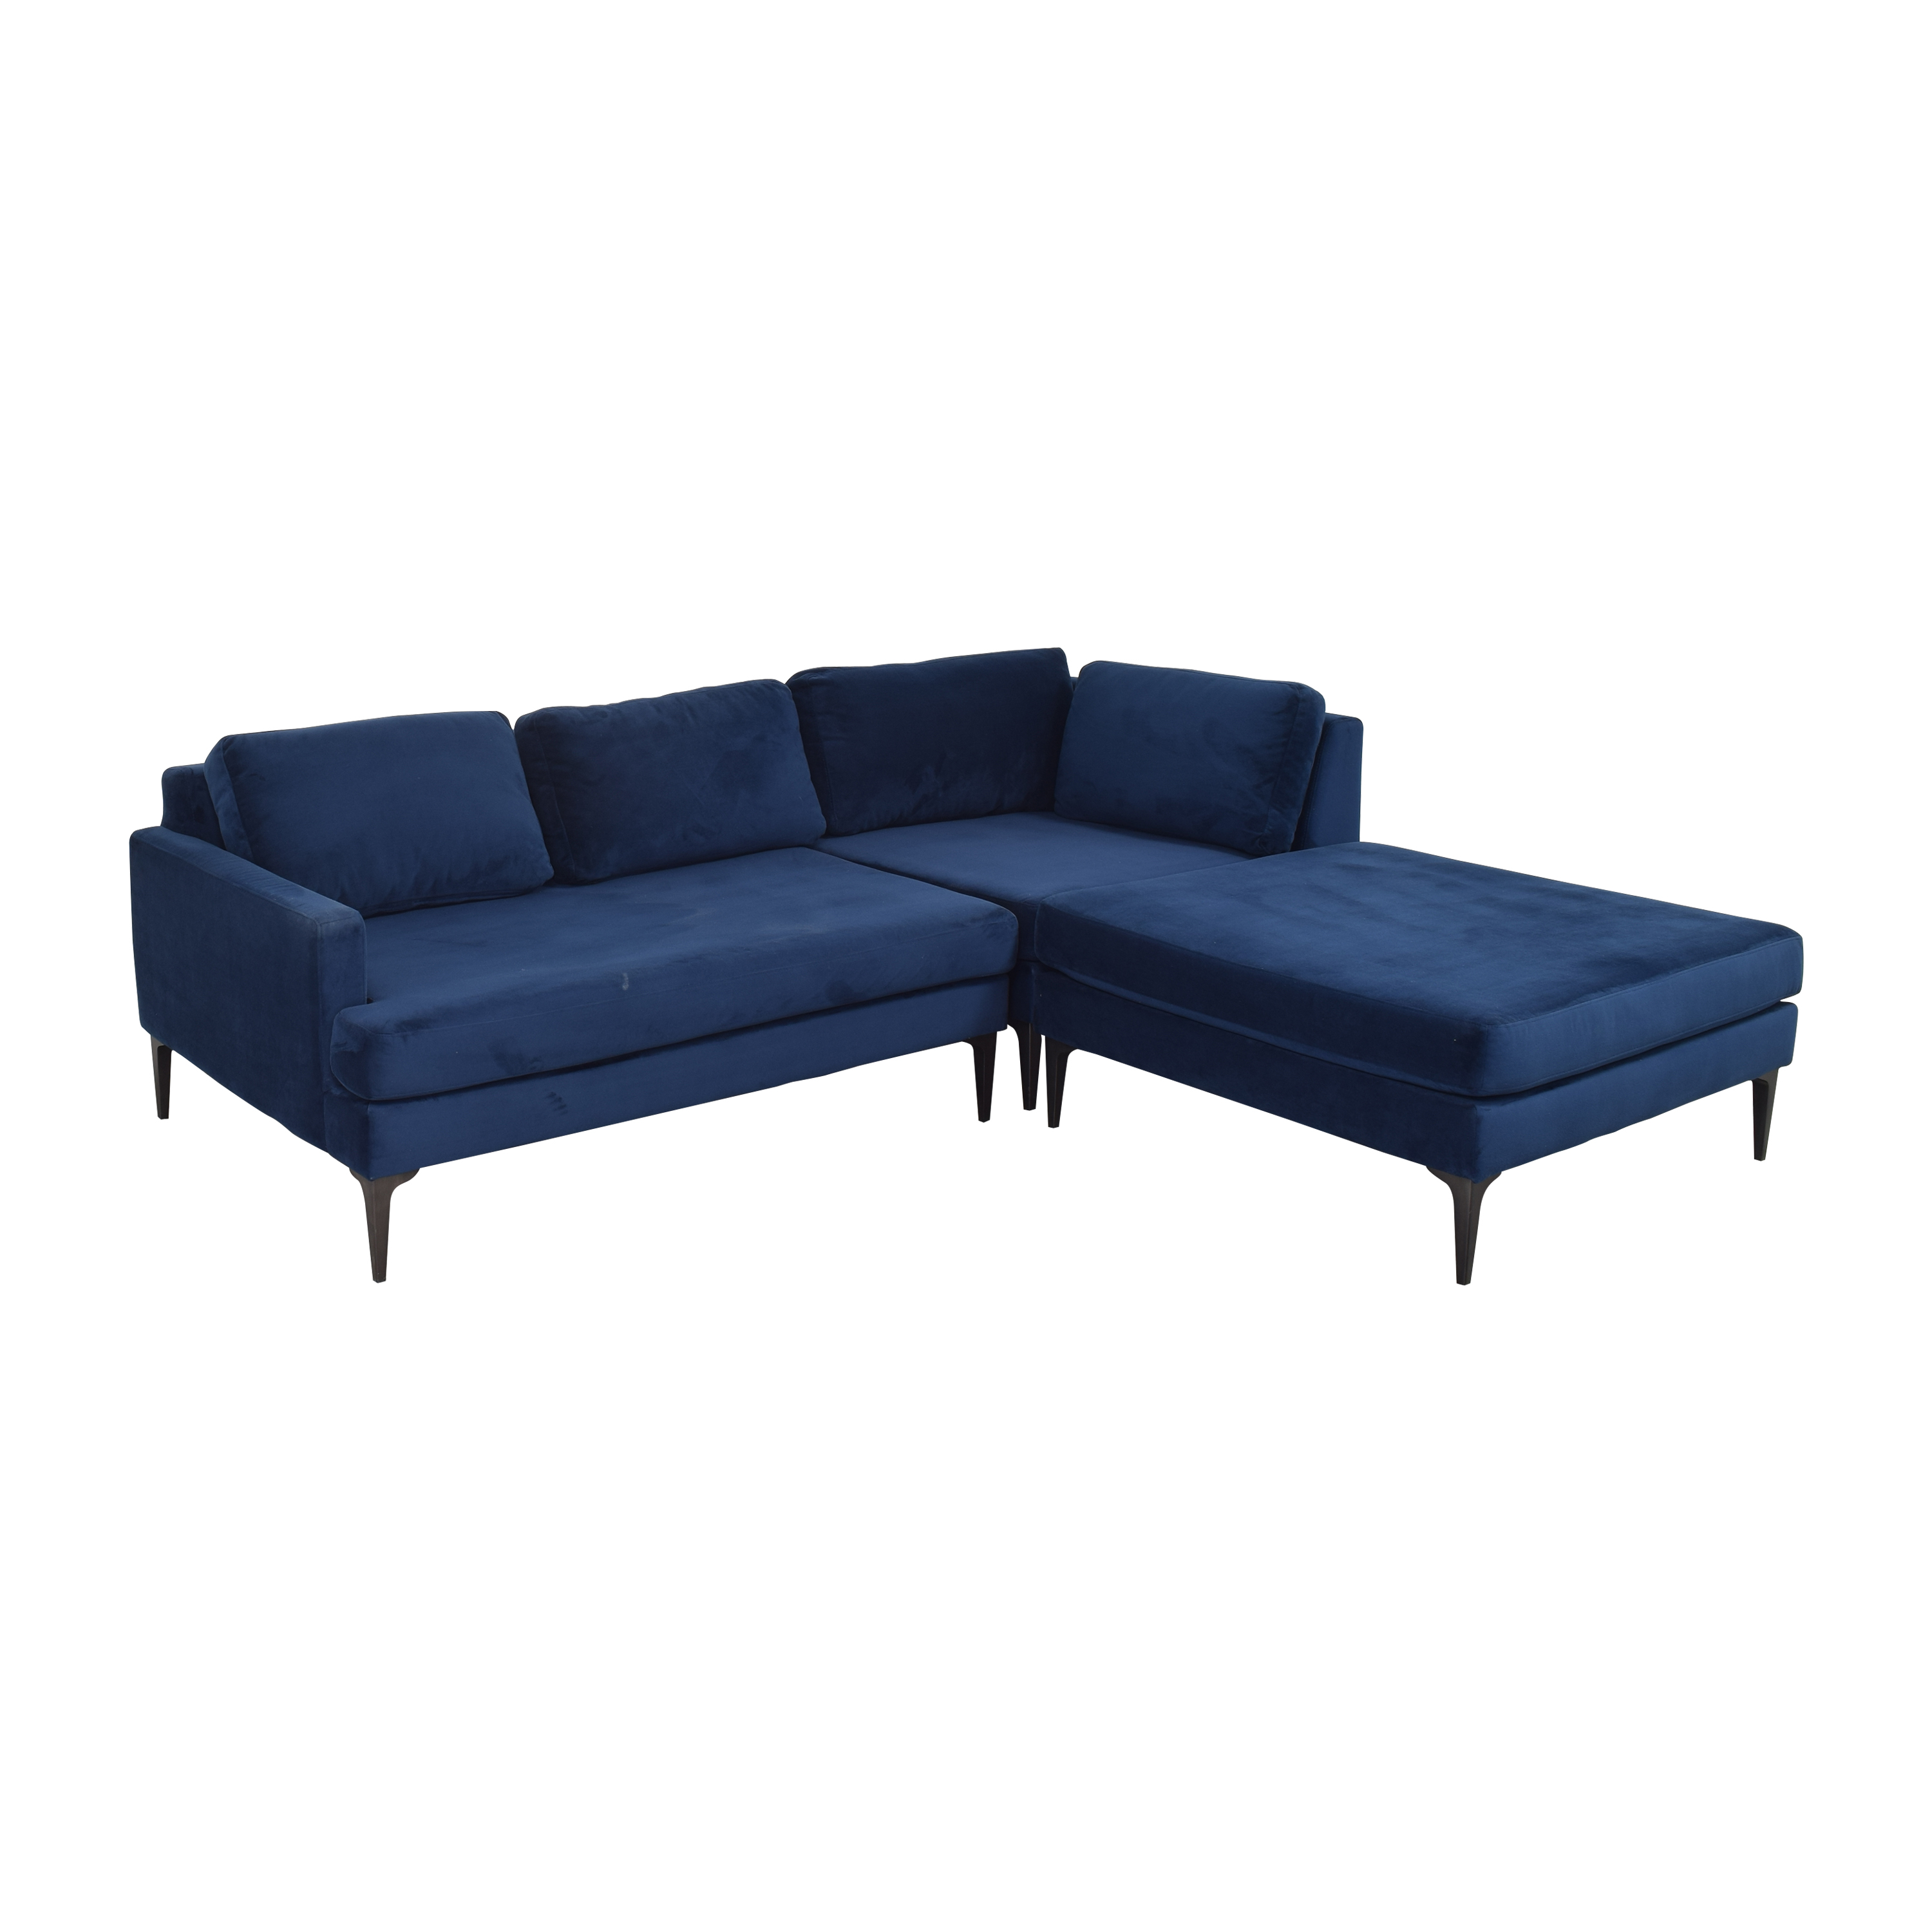 West Elm West Elm Andes 3-Piece Chaise Sectional Sectionals